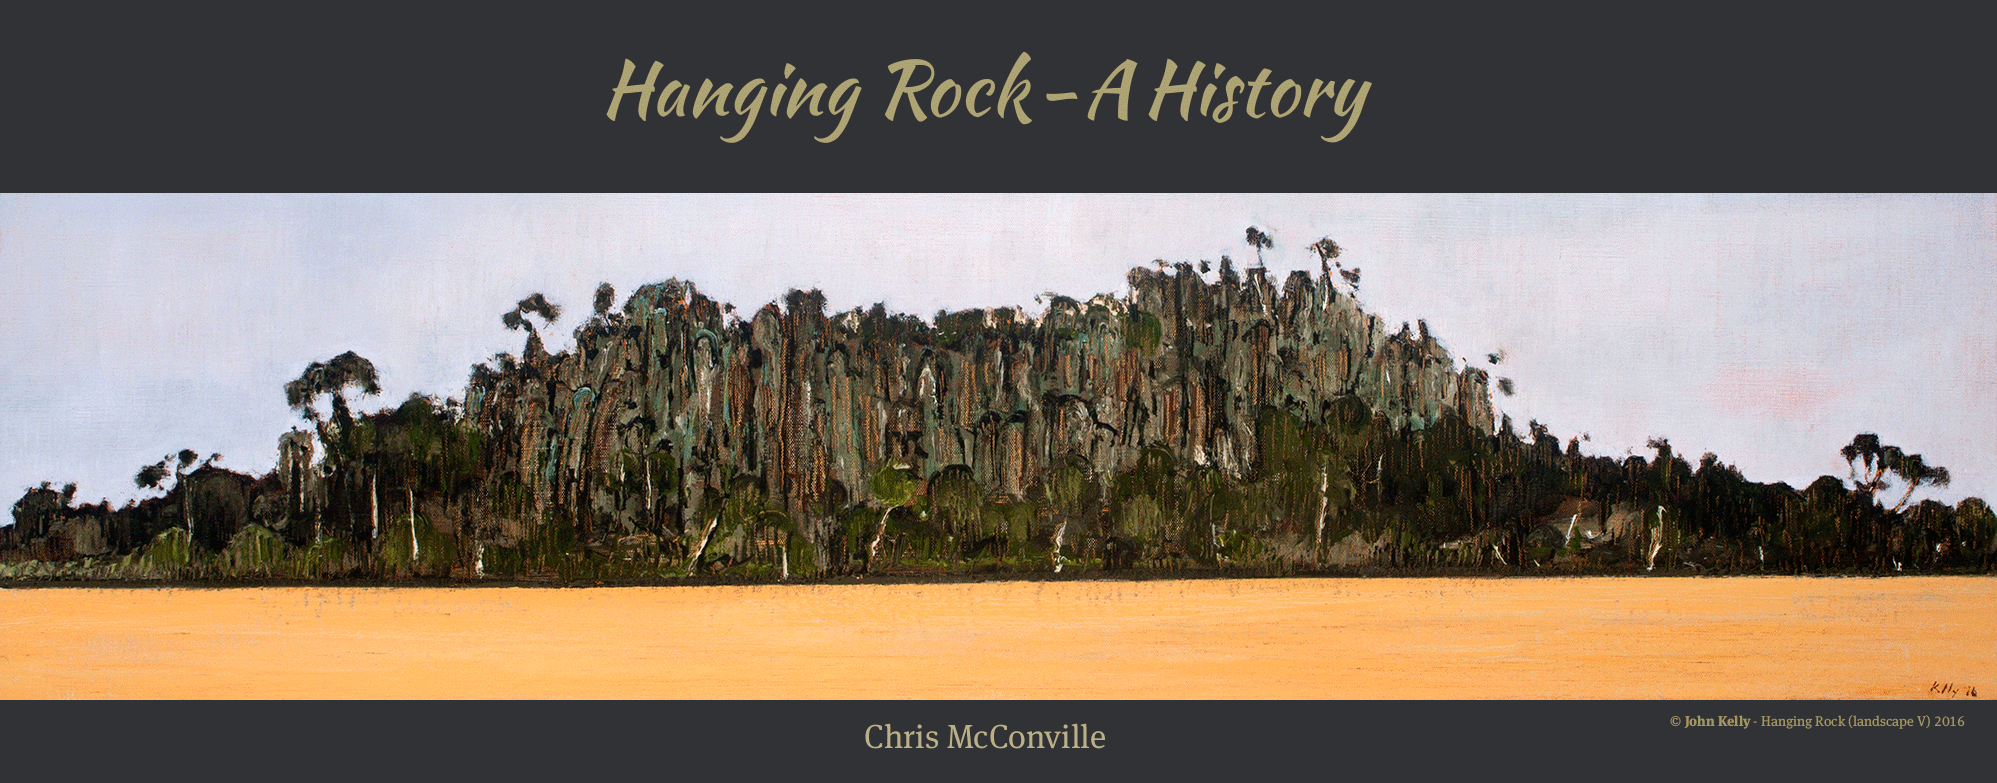 The cover image of Hanging Rock - A History